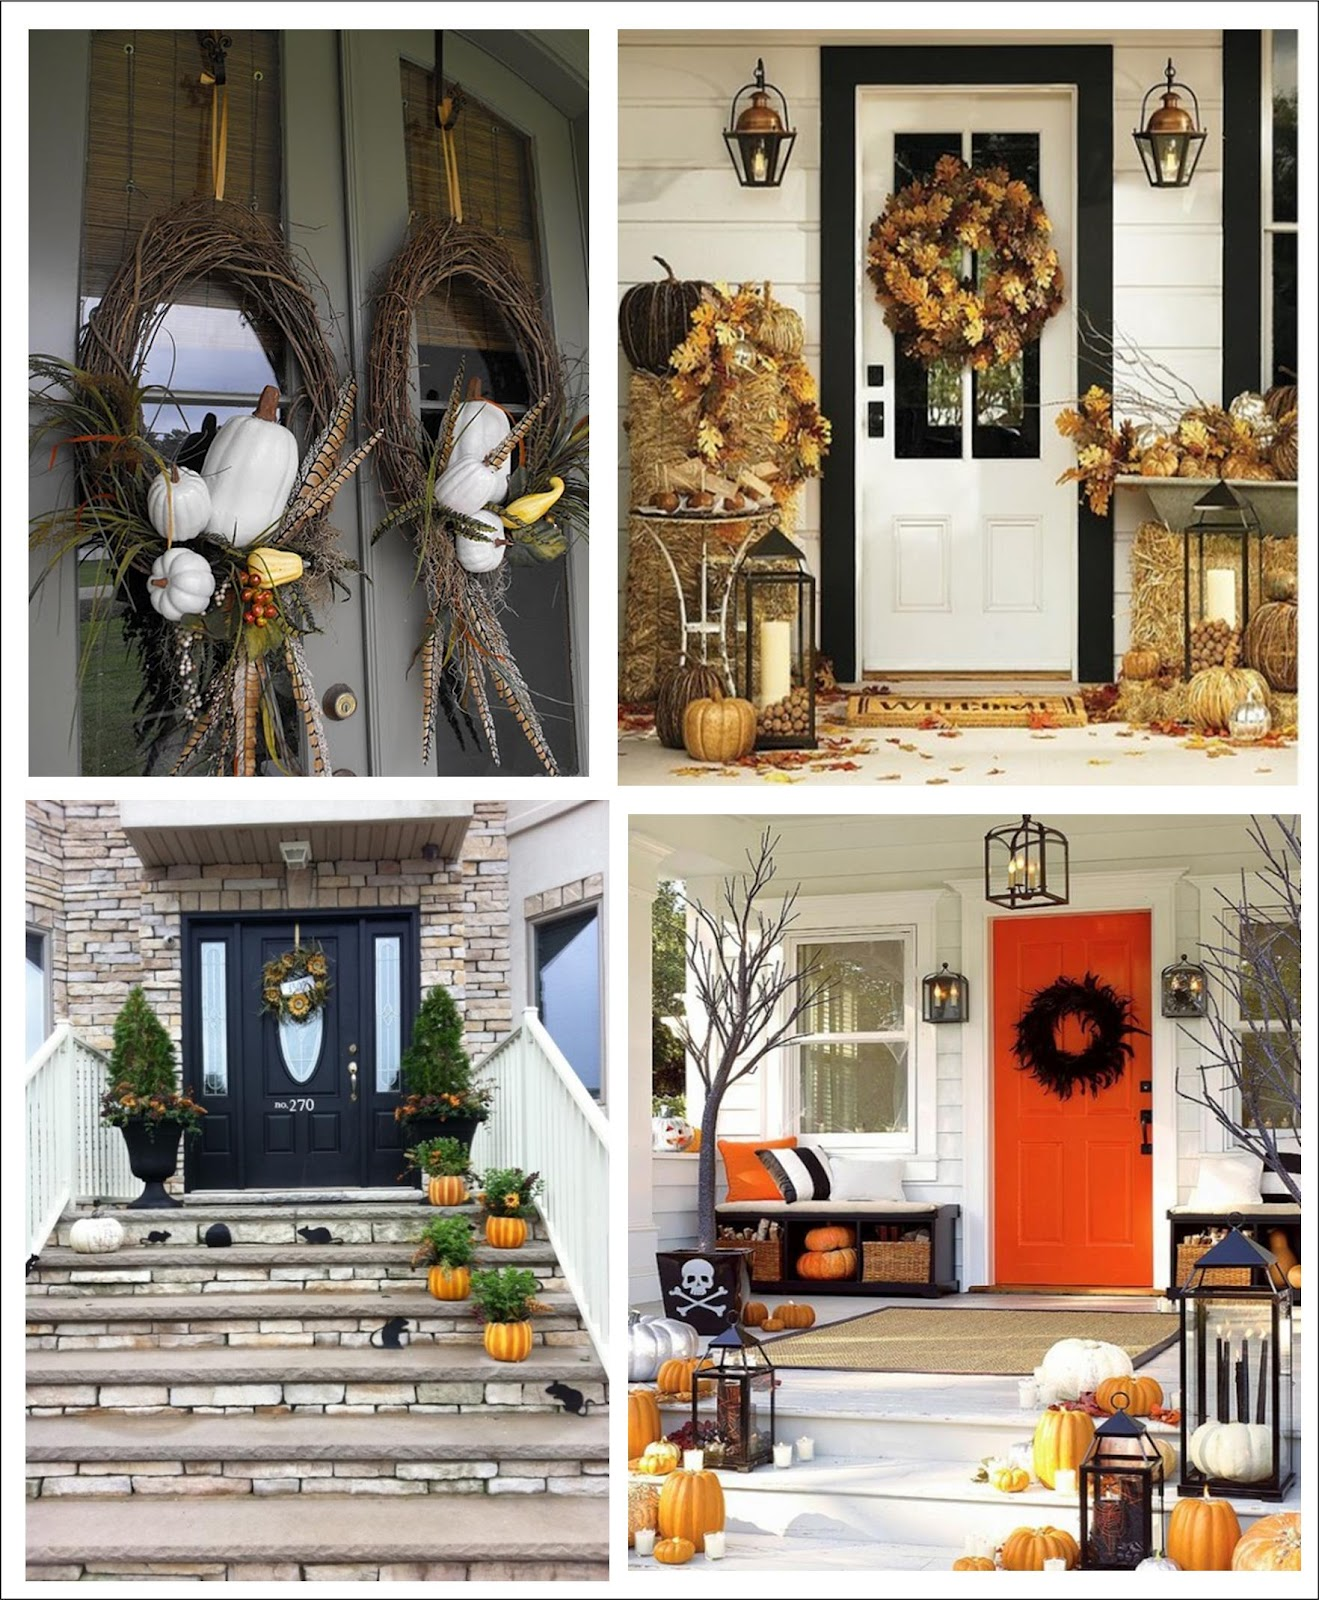 Decorating Ideas: It's Written On The Wall: 90 Fall Porch Decorating Ideas